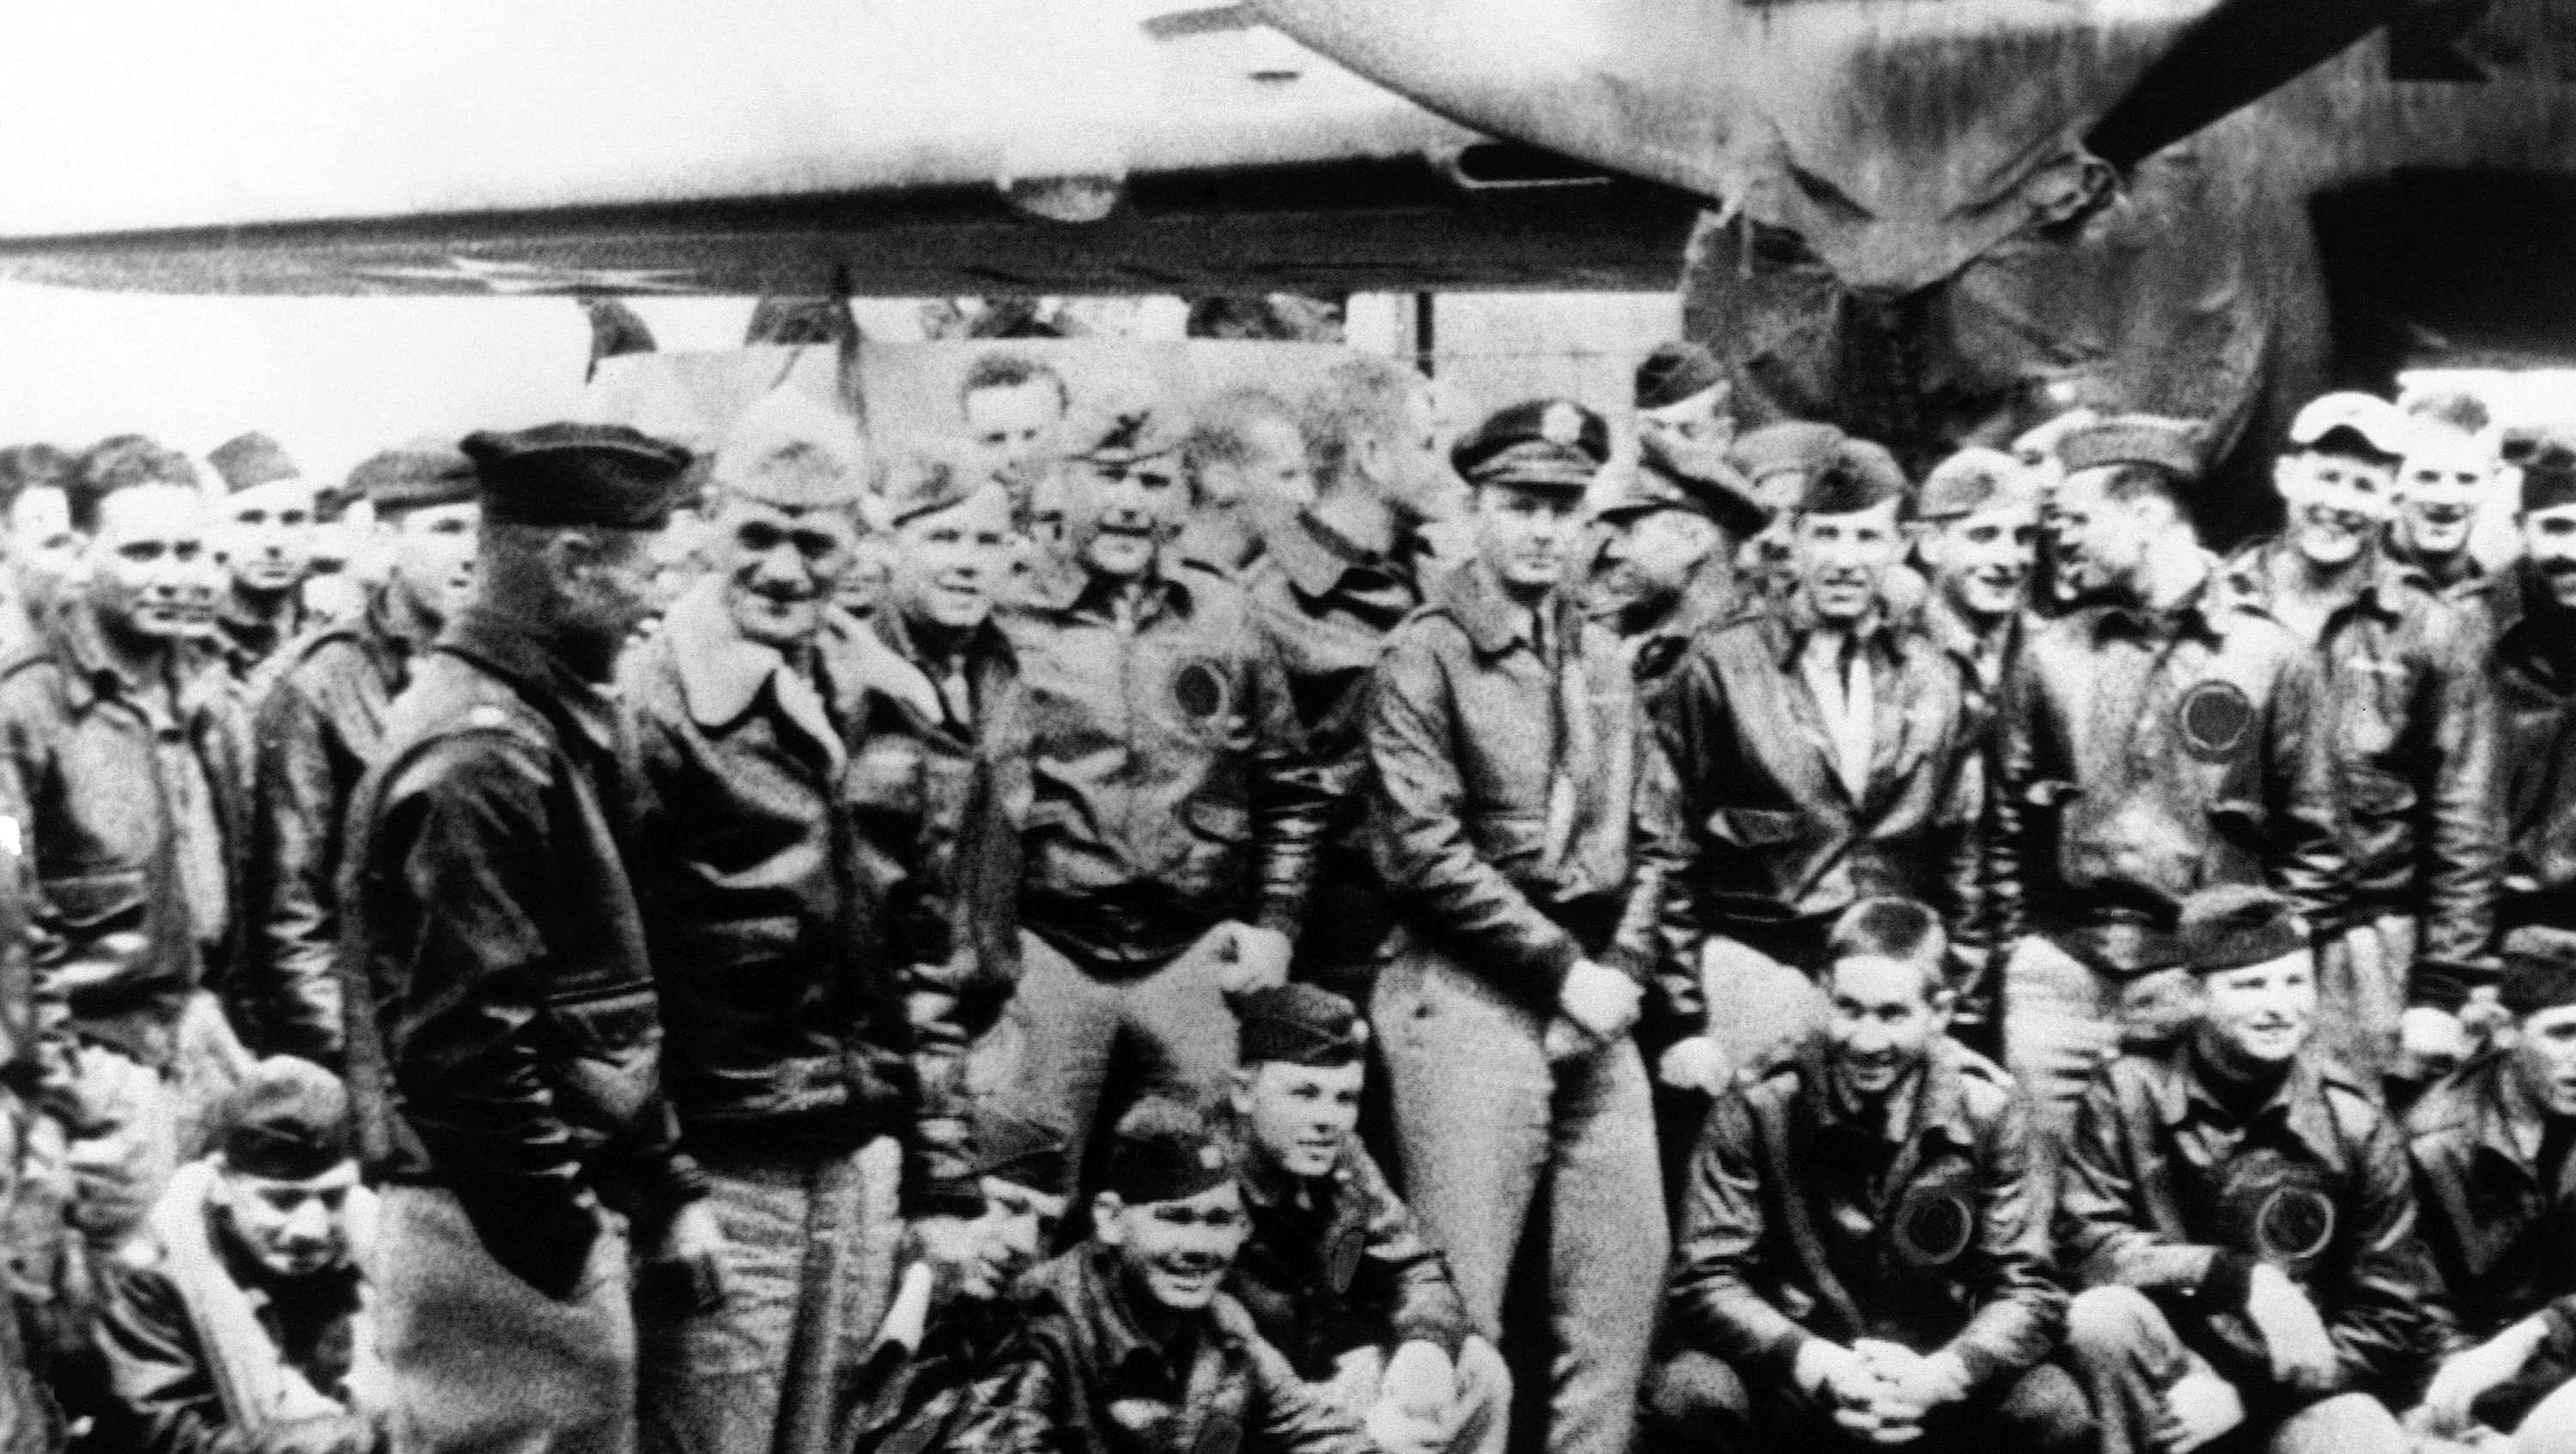 Orders in his hand, Capt. Marc A. Mitscher, skipper of the U.S.S. Hornet, discusses details for the take-off of Army members for the Tokyo raid with Maj. Gen. James H. Doolittle (left in left foreground). Many of the 80 pilots who made the raid, April 18, 1942, stand or squat on the carrier's flight deck.